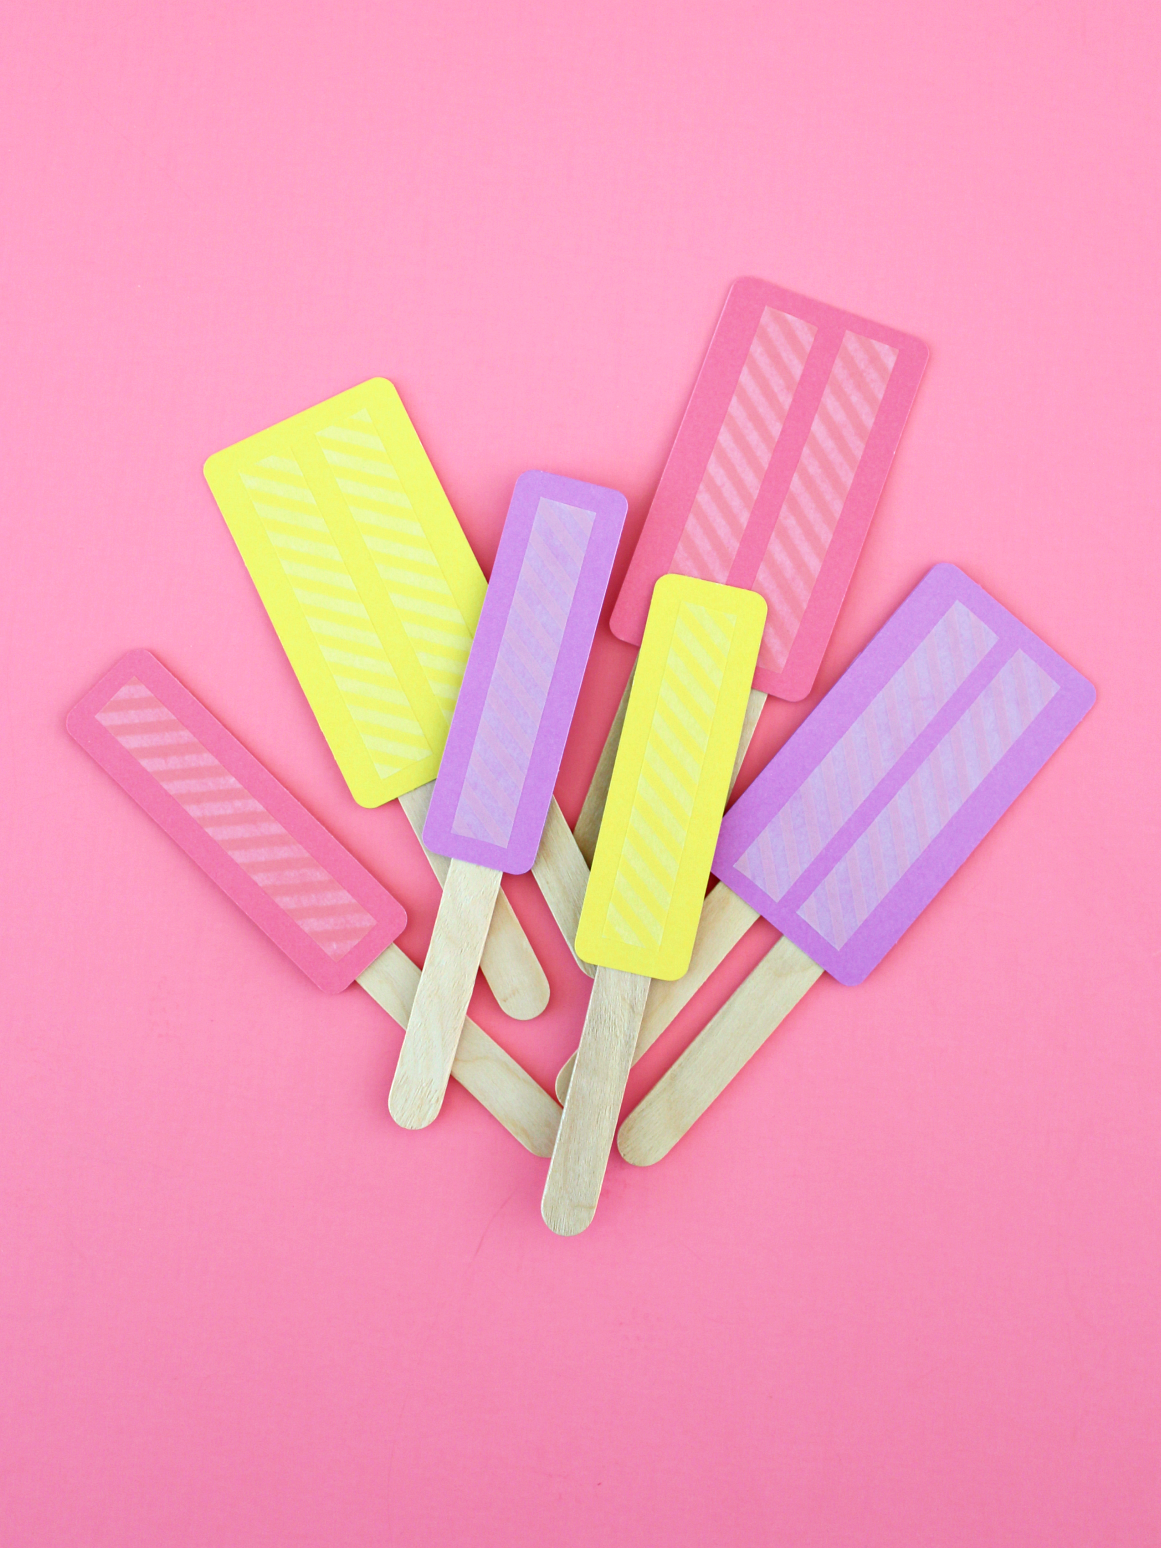 DOUBLE-SIDEDWASHI TAPE POPSICLES (WITH FREE TEMPLATE)